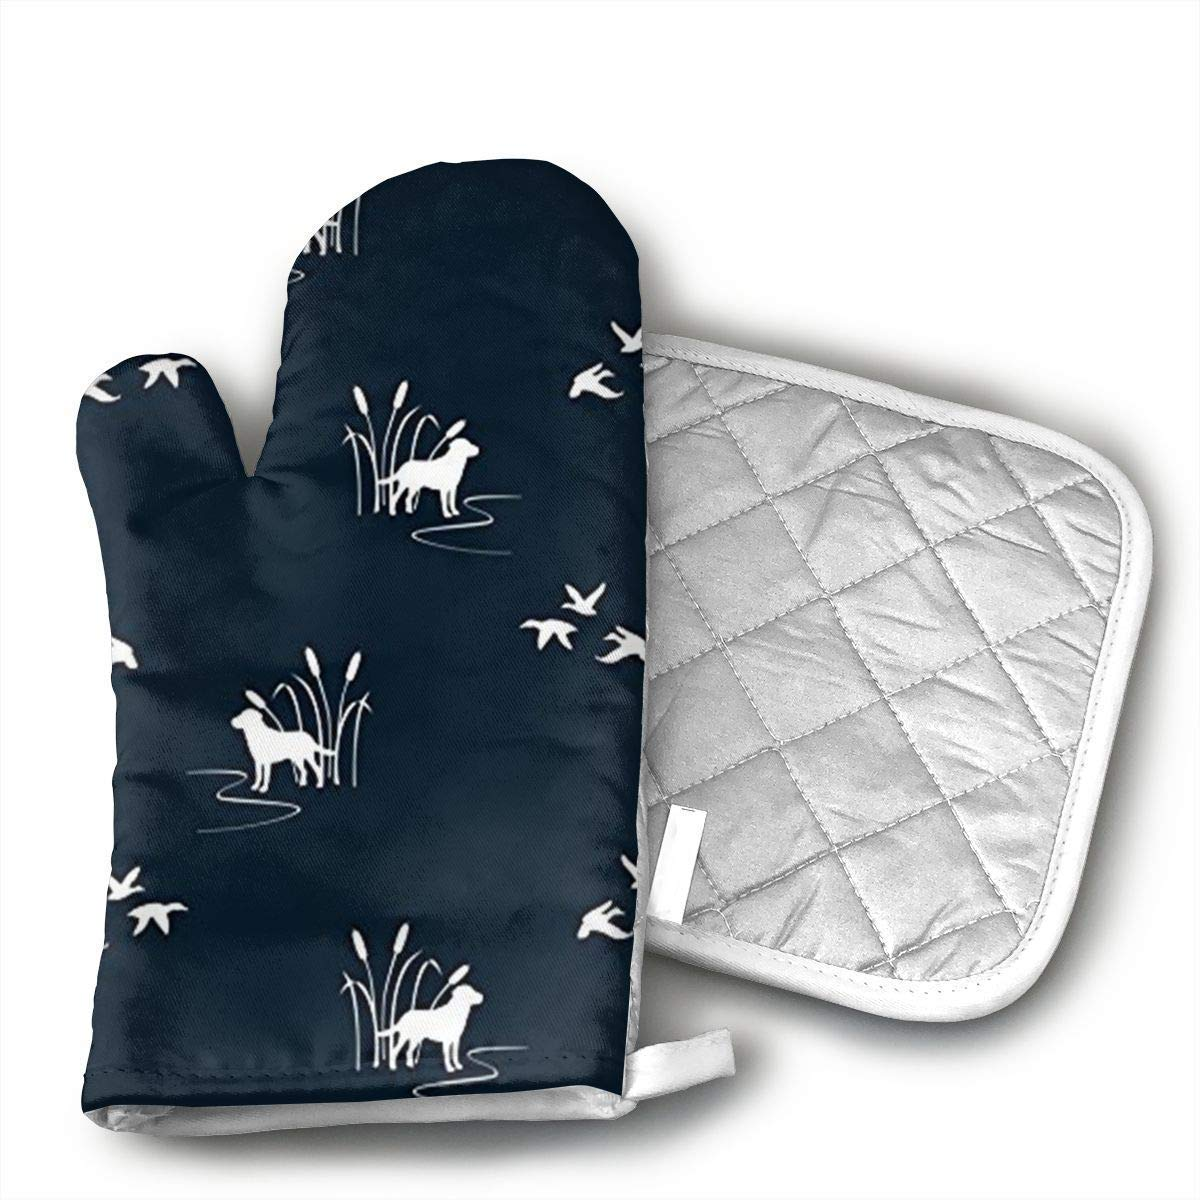 NoveltyGloves Dog Ducks Hunting Scene Oven Mitts,Professional Heat Resistant Microwave BBQ Oven Insulation Thickening Cotton Gloves Baking Pot Mitts Soft Inner Lining Kitchen Cooking